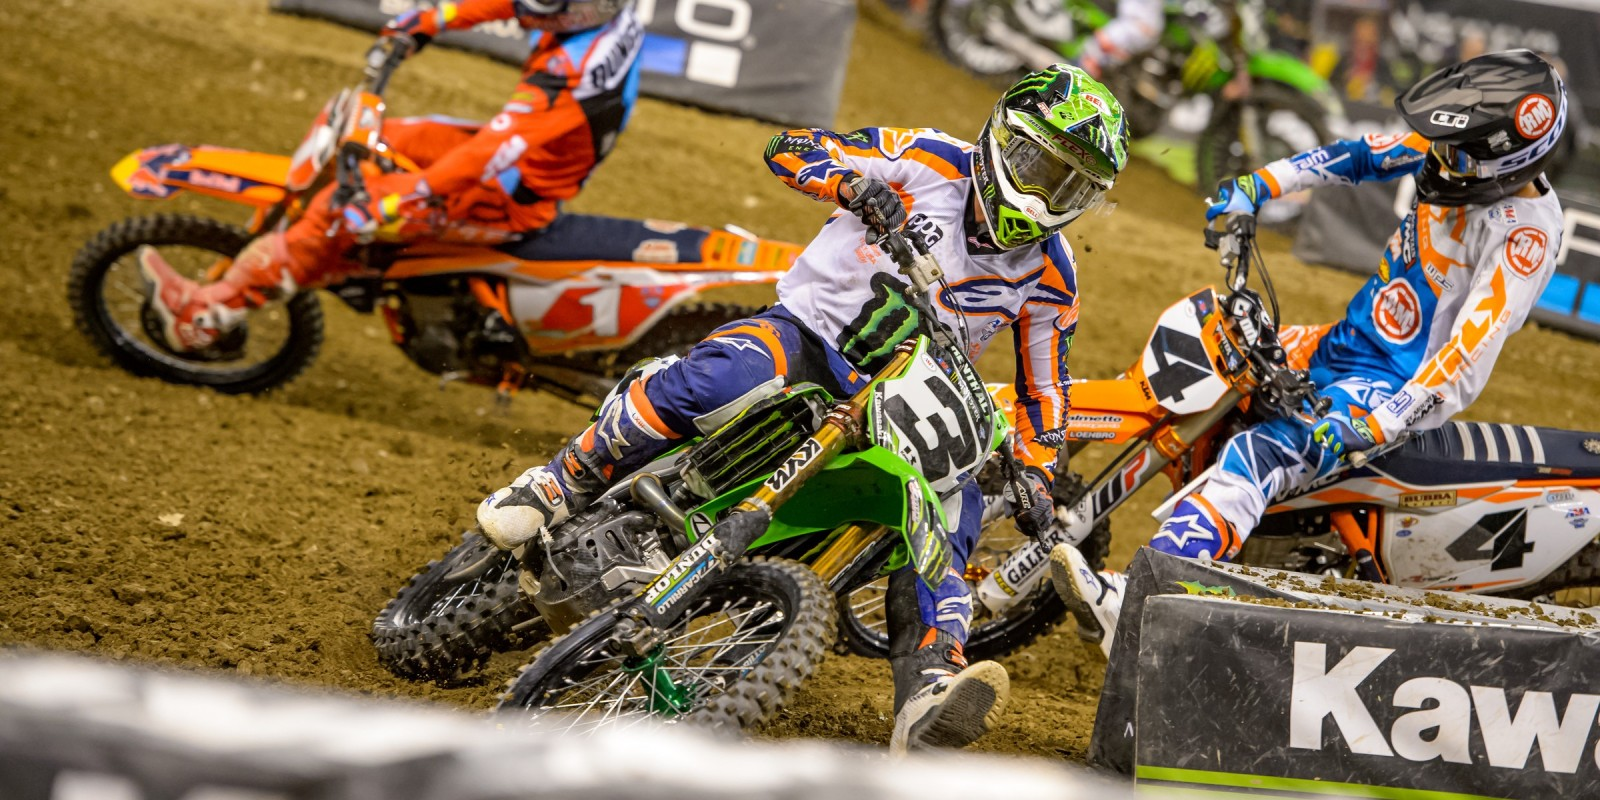 Monster riders at the 2017 Supercross in Indianapolis, IN